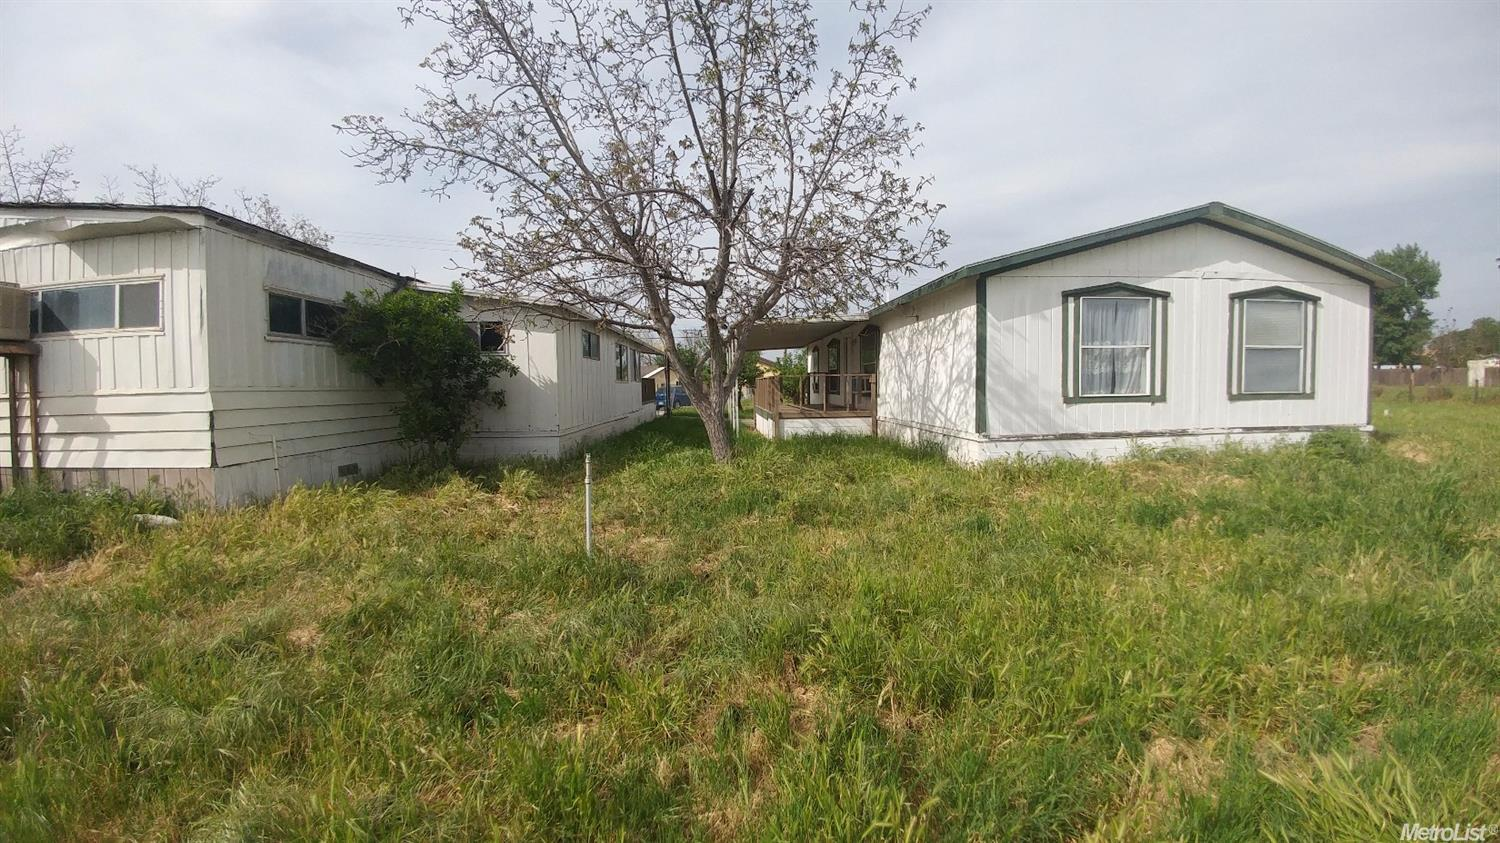 356 E Krell Ln, French Camp, CA 95231